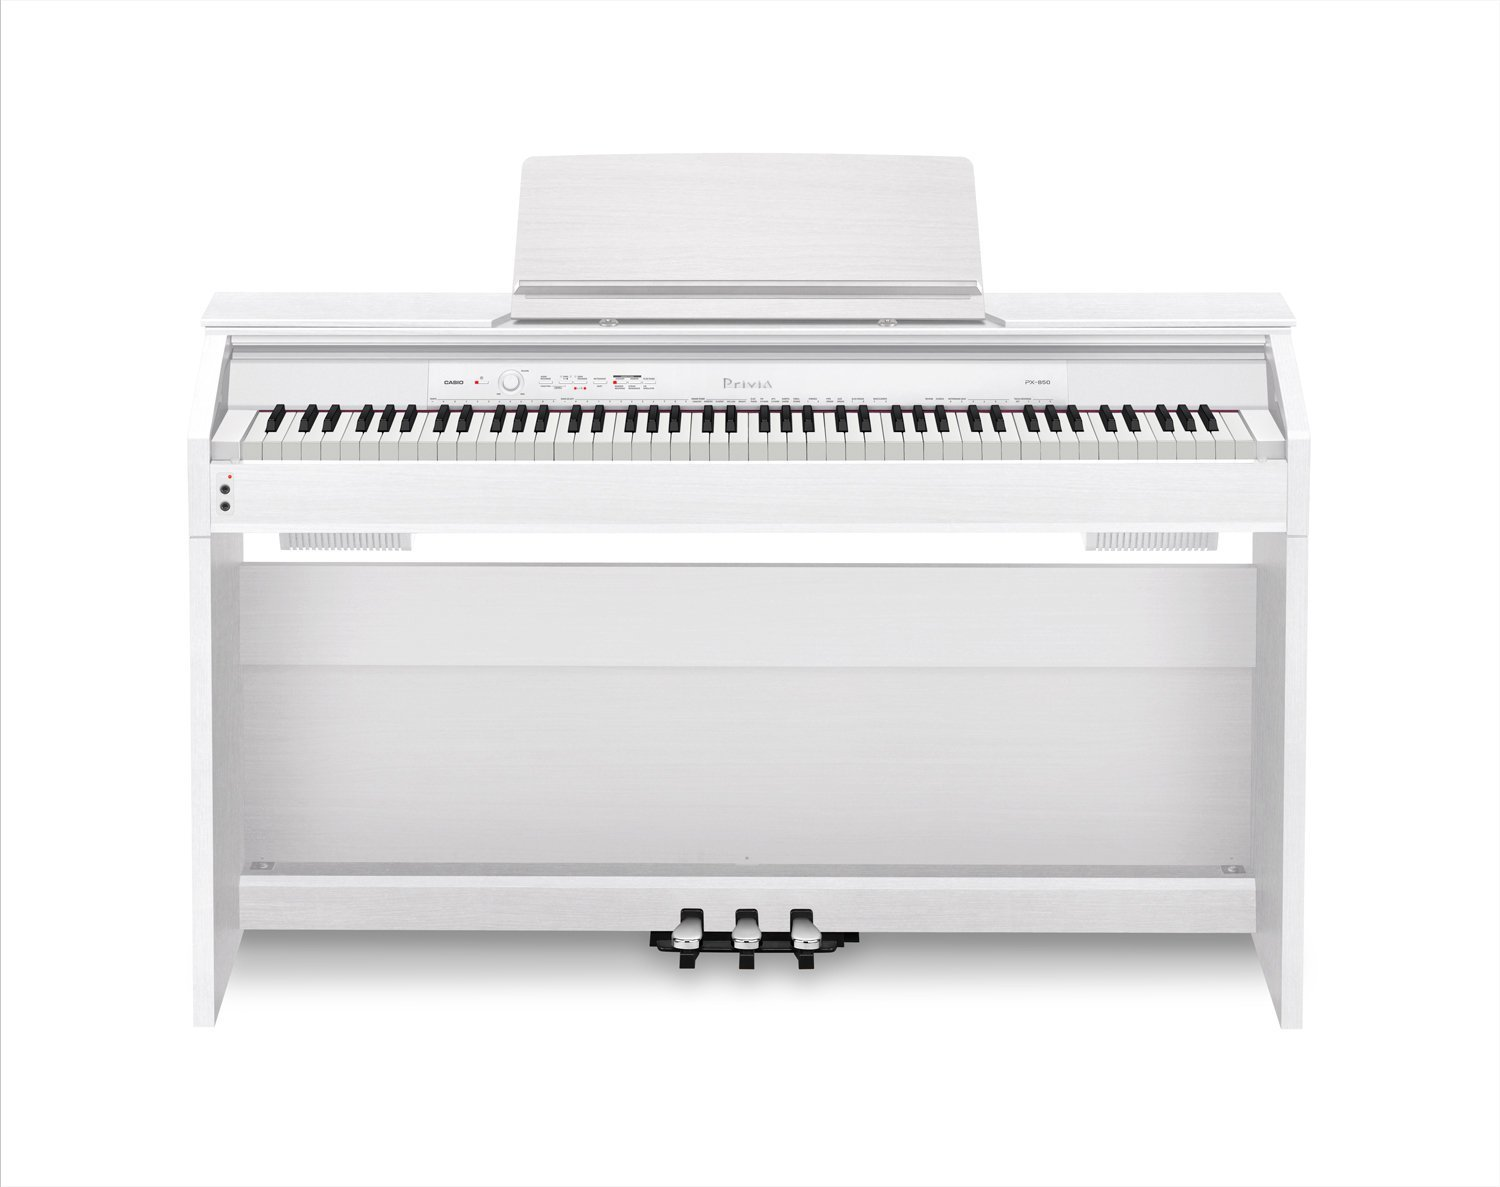 casio px850 privia digital piano review. Black Bedroom Furniture Sets. Home Design Ideas